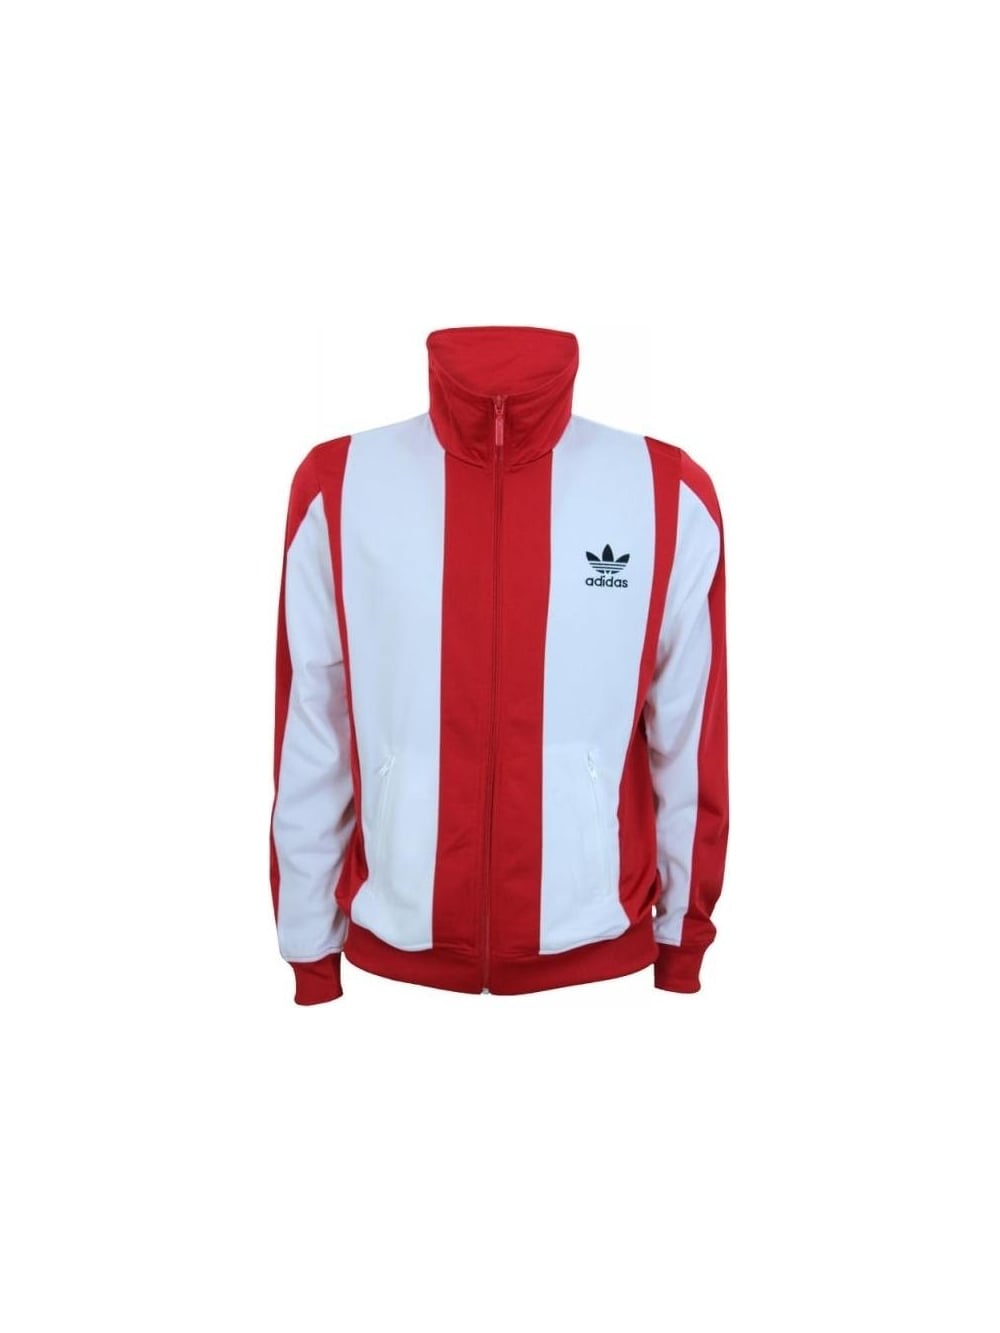 efe3c21fab Adidas Beckenbauer Track Top in White Red - Northern Threads